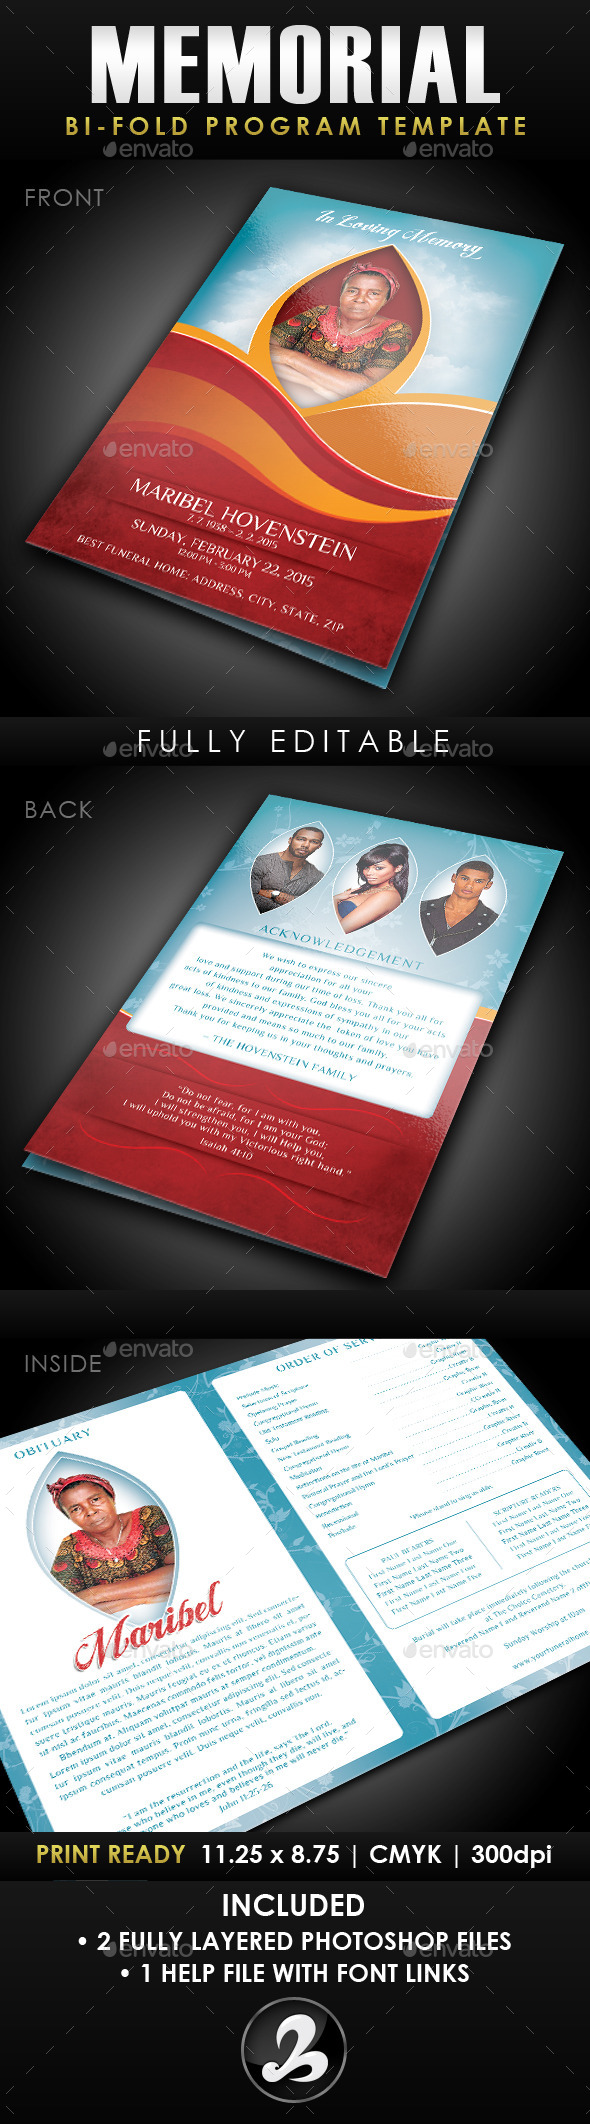 Memorial Program Template   Program Template Fonts And Colors